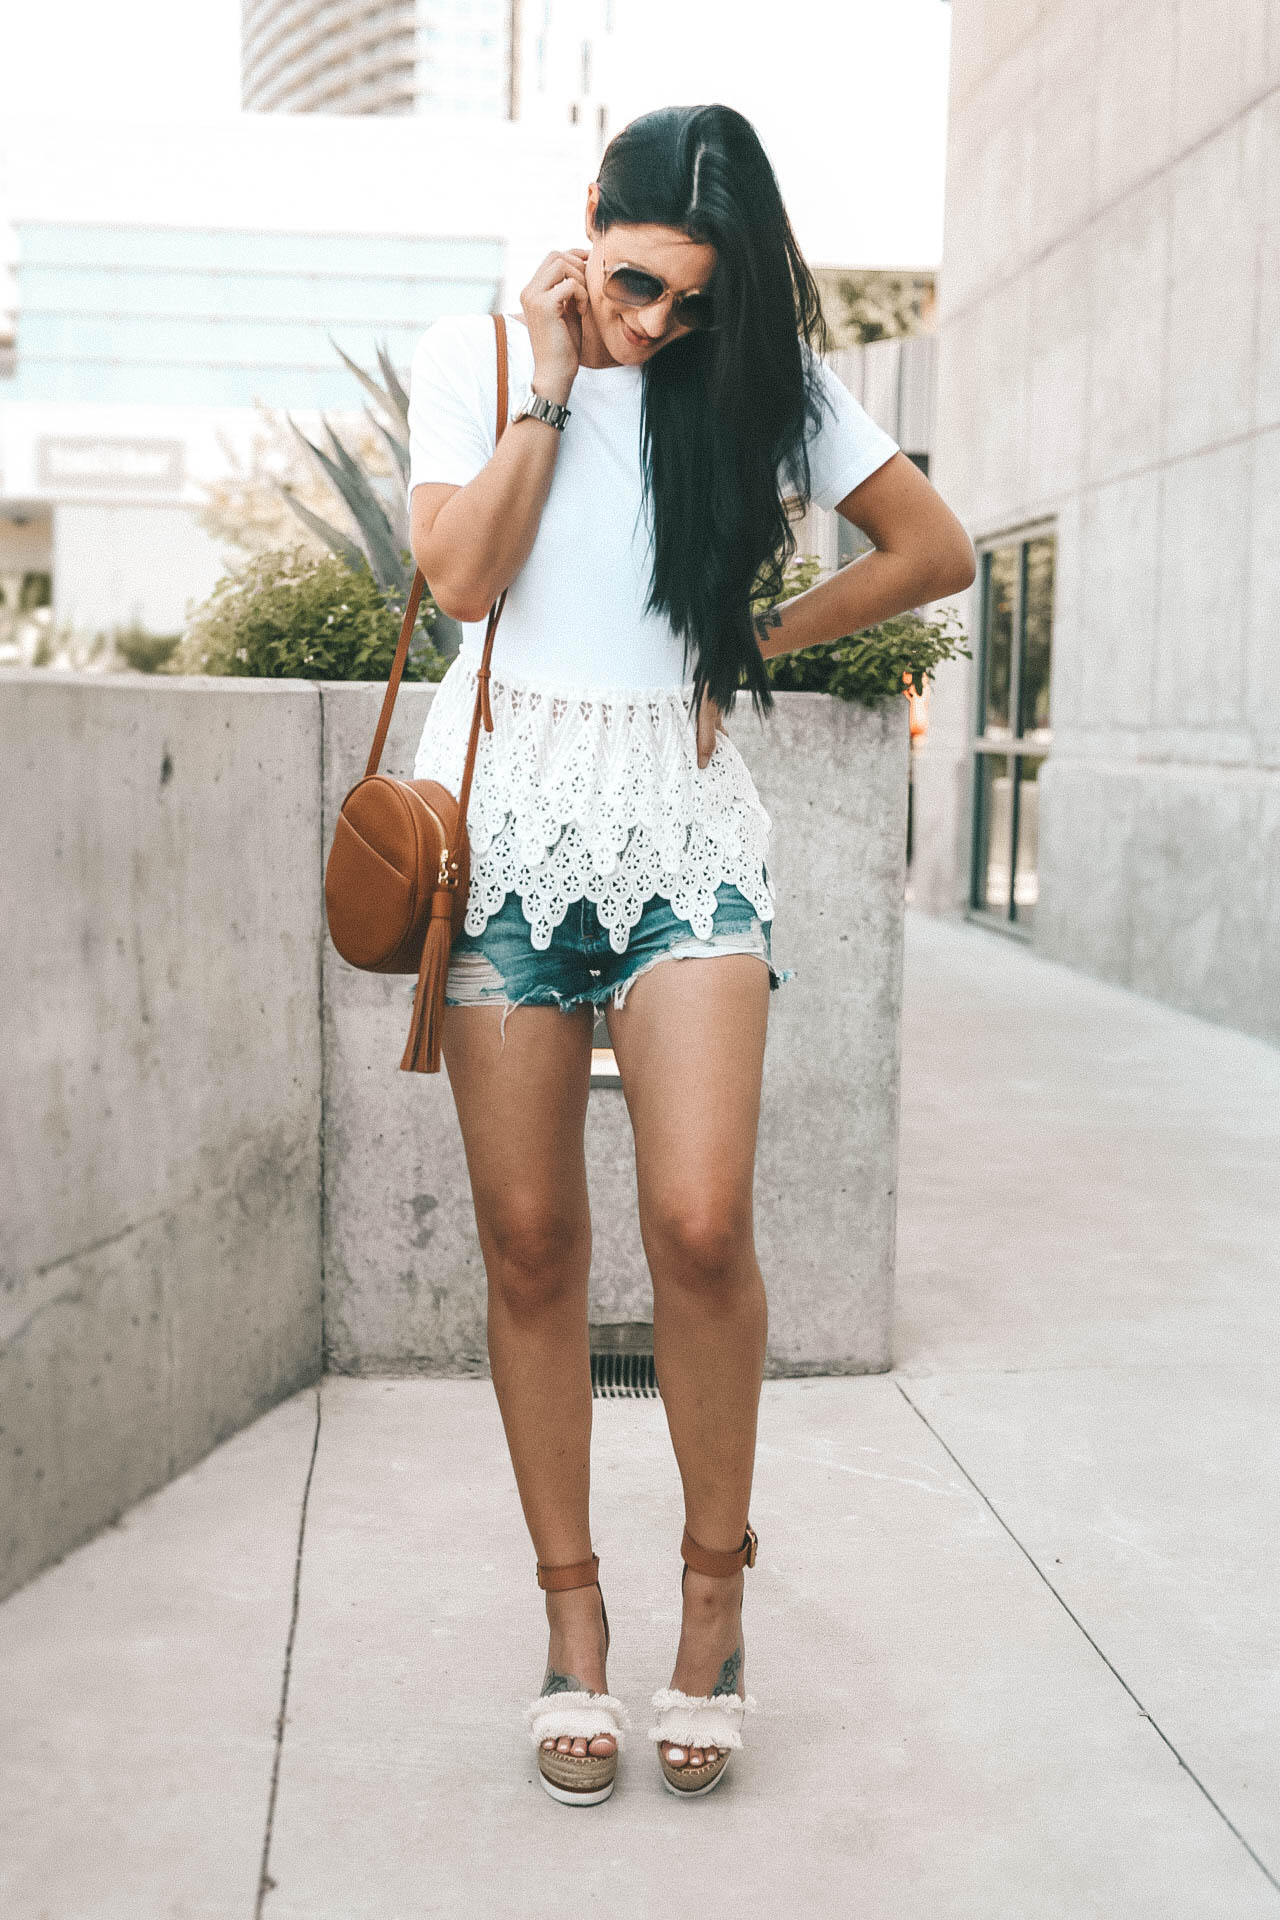 #style #fashion #outfits #womensoutfit #peplum #peplumtop #summerfashion #summerstyle #summeroutfit #dtkaustin the perfect white lace peplum top for summer from Chicwish. It is under $30 and an affordable staple top. - {How to Wear a Crochet Peplum Top + Why They are so Flattering} featured by popular Austin fashion blogger Dressed to Kill